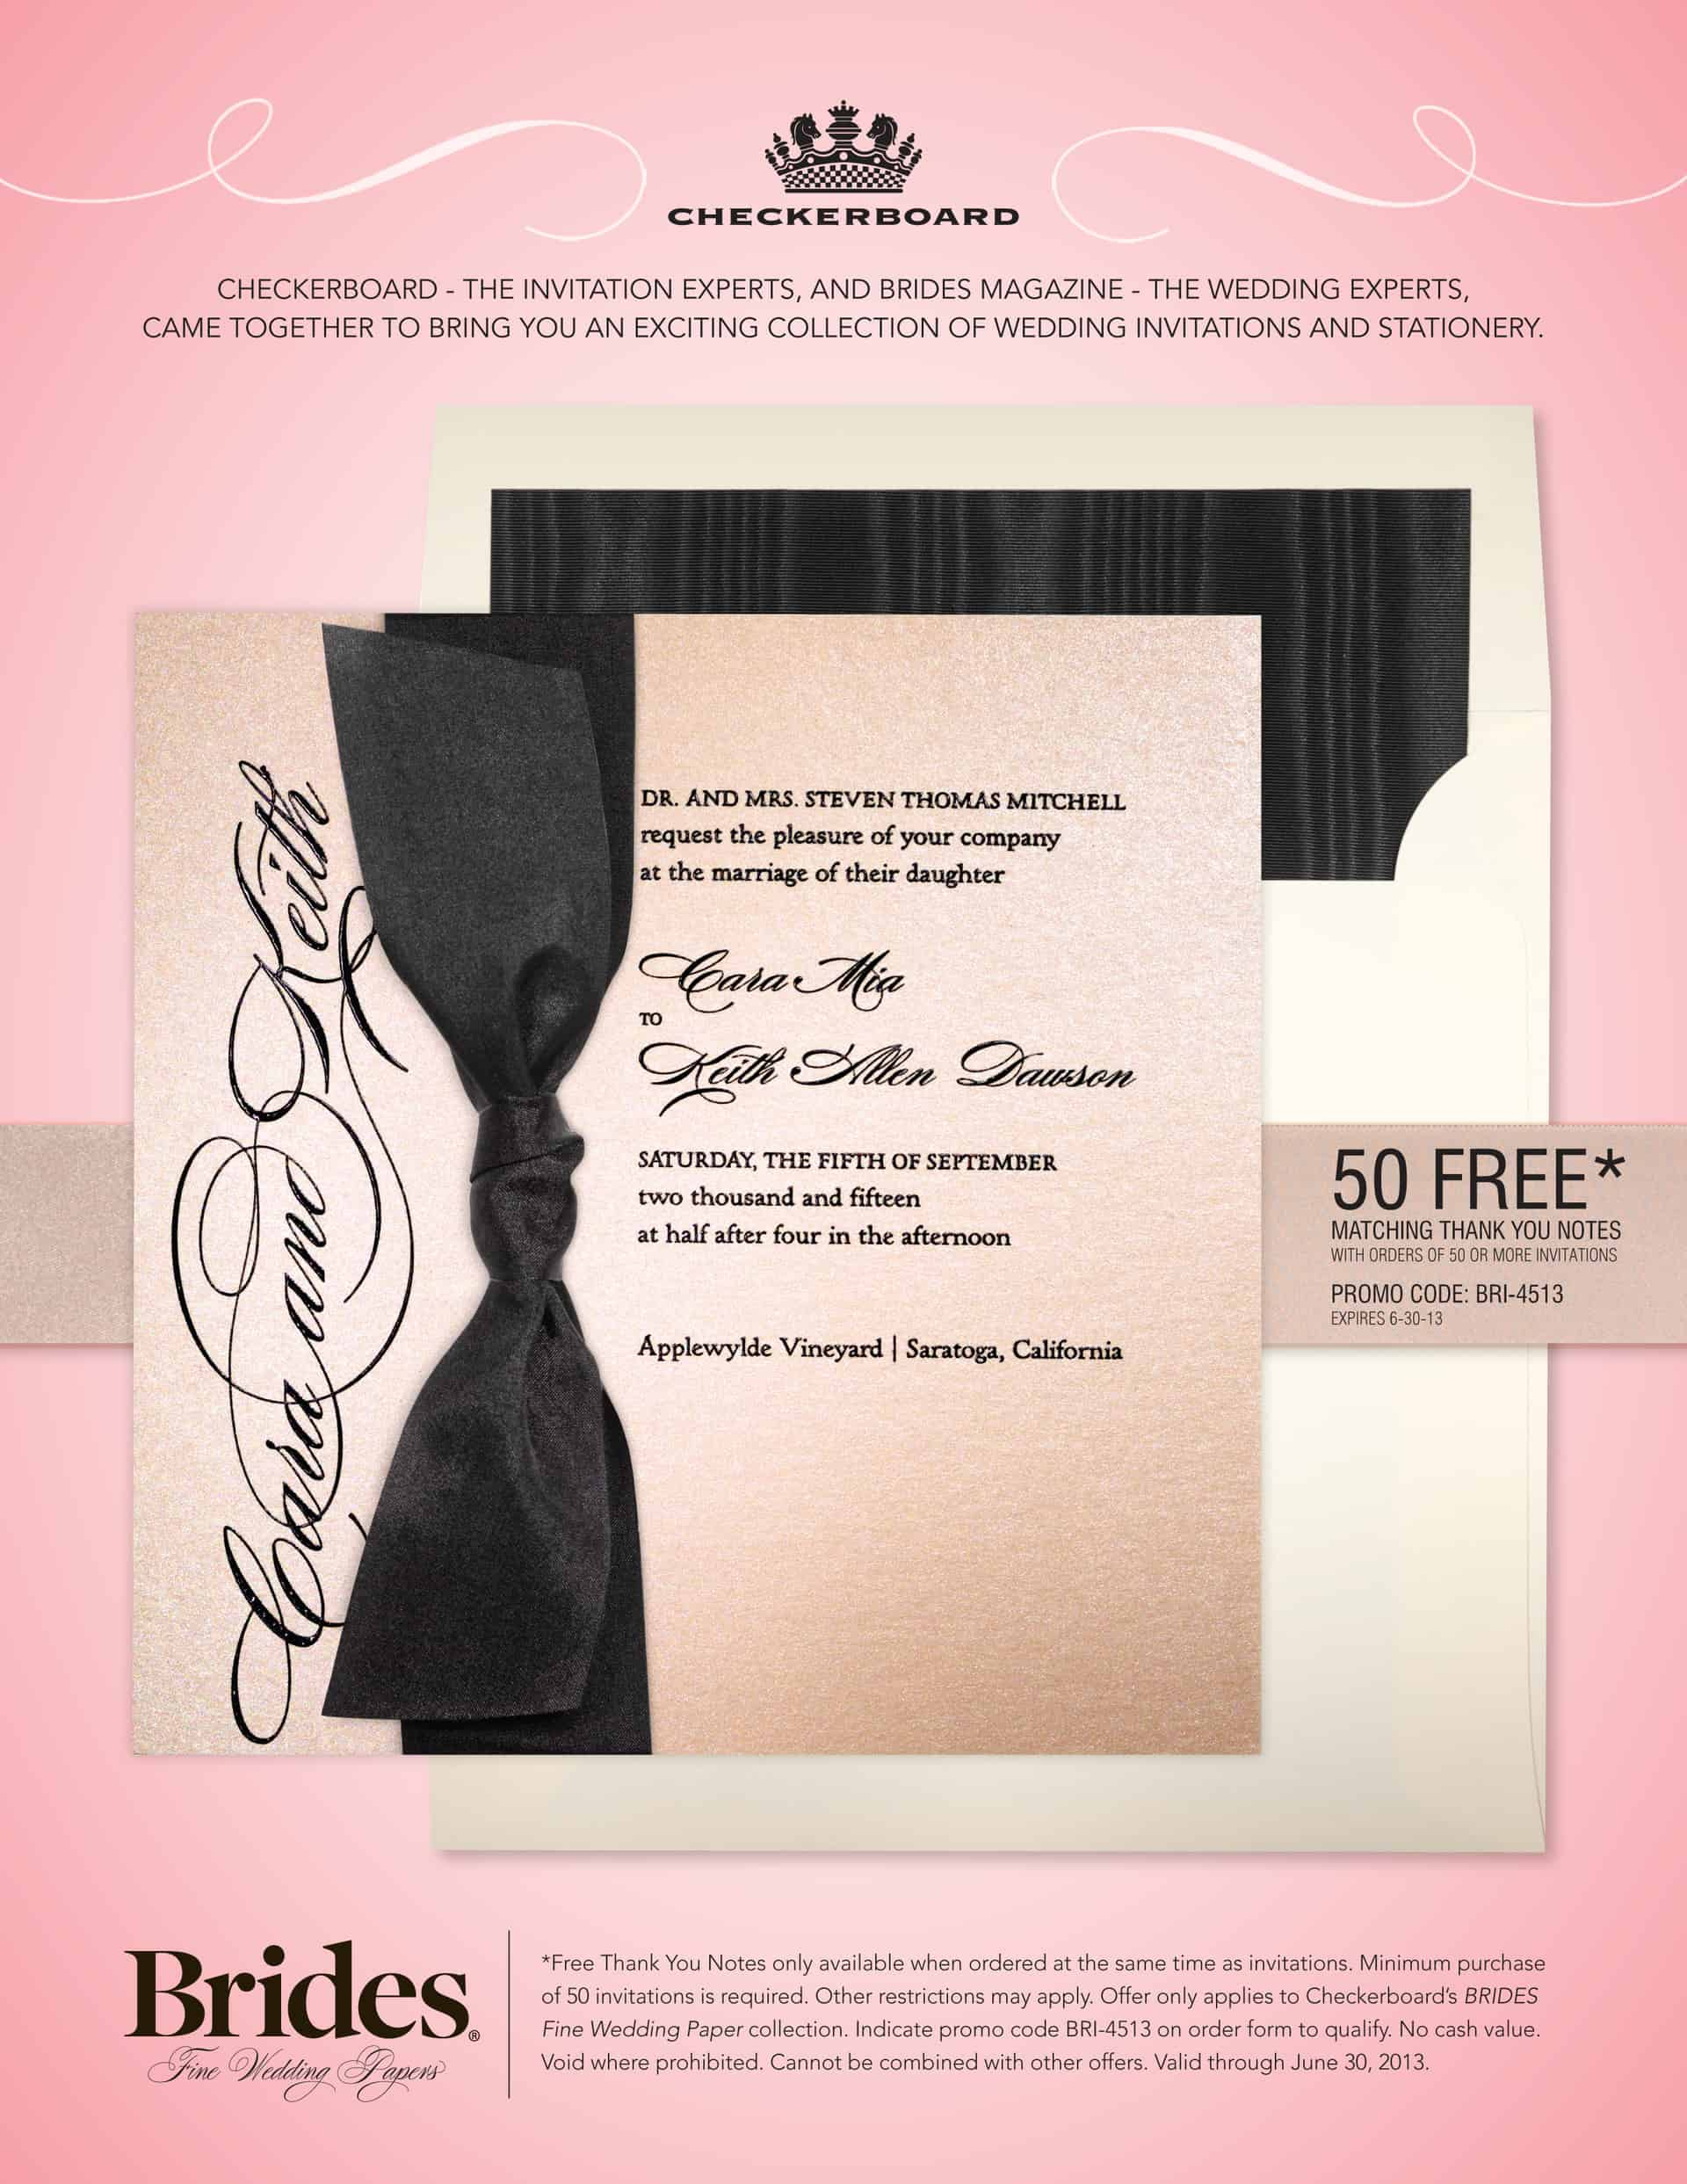 Checkerboard Wedding Invitation Promotion At Hyegraph Embarcadero